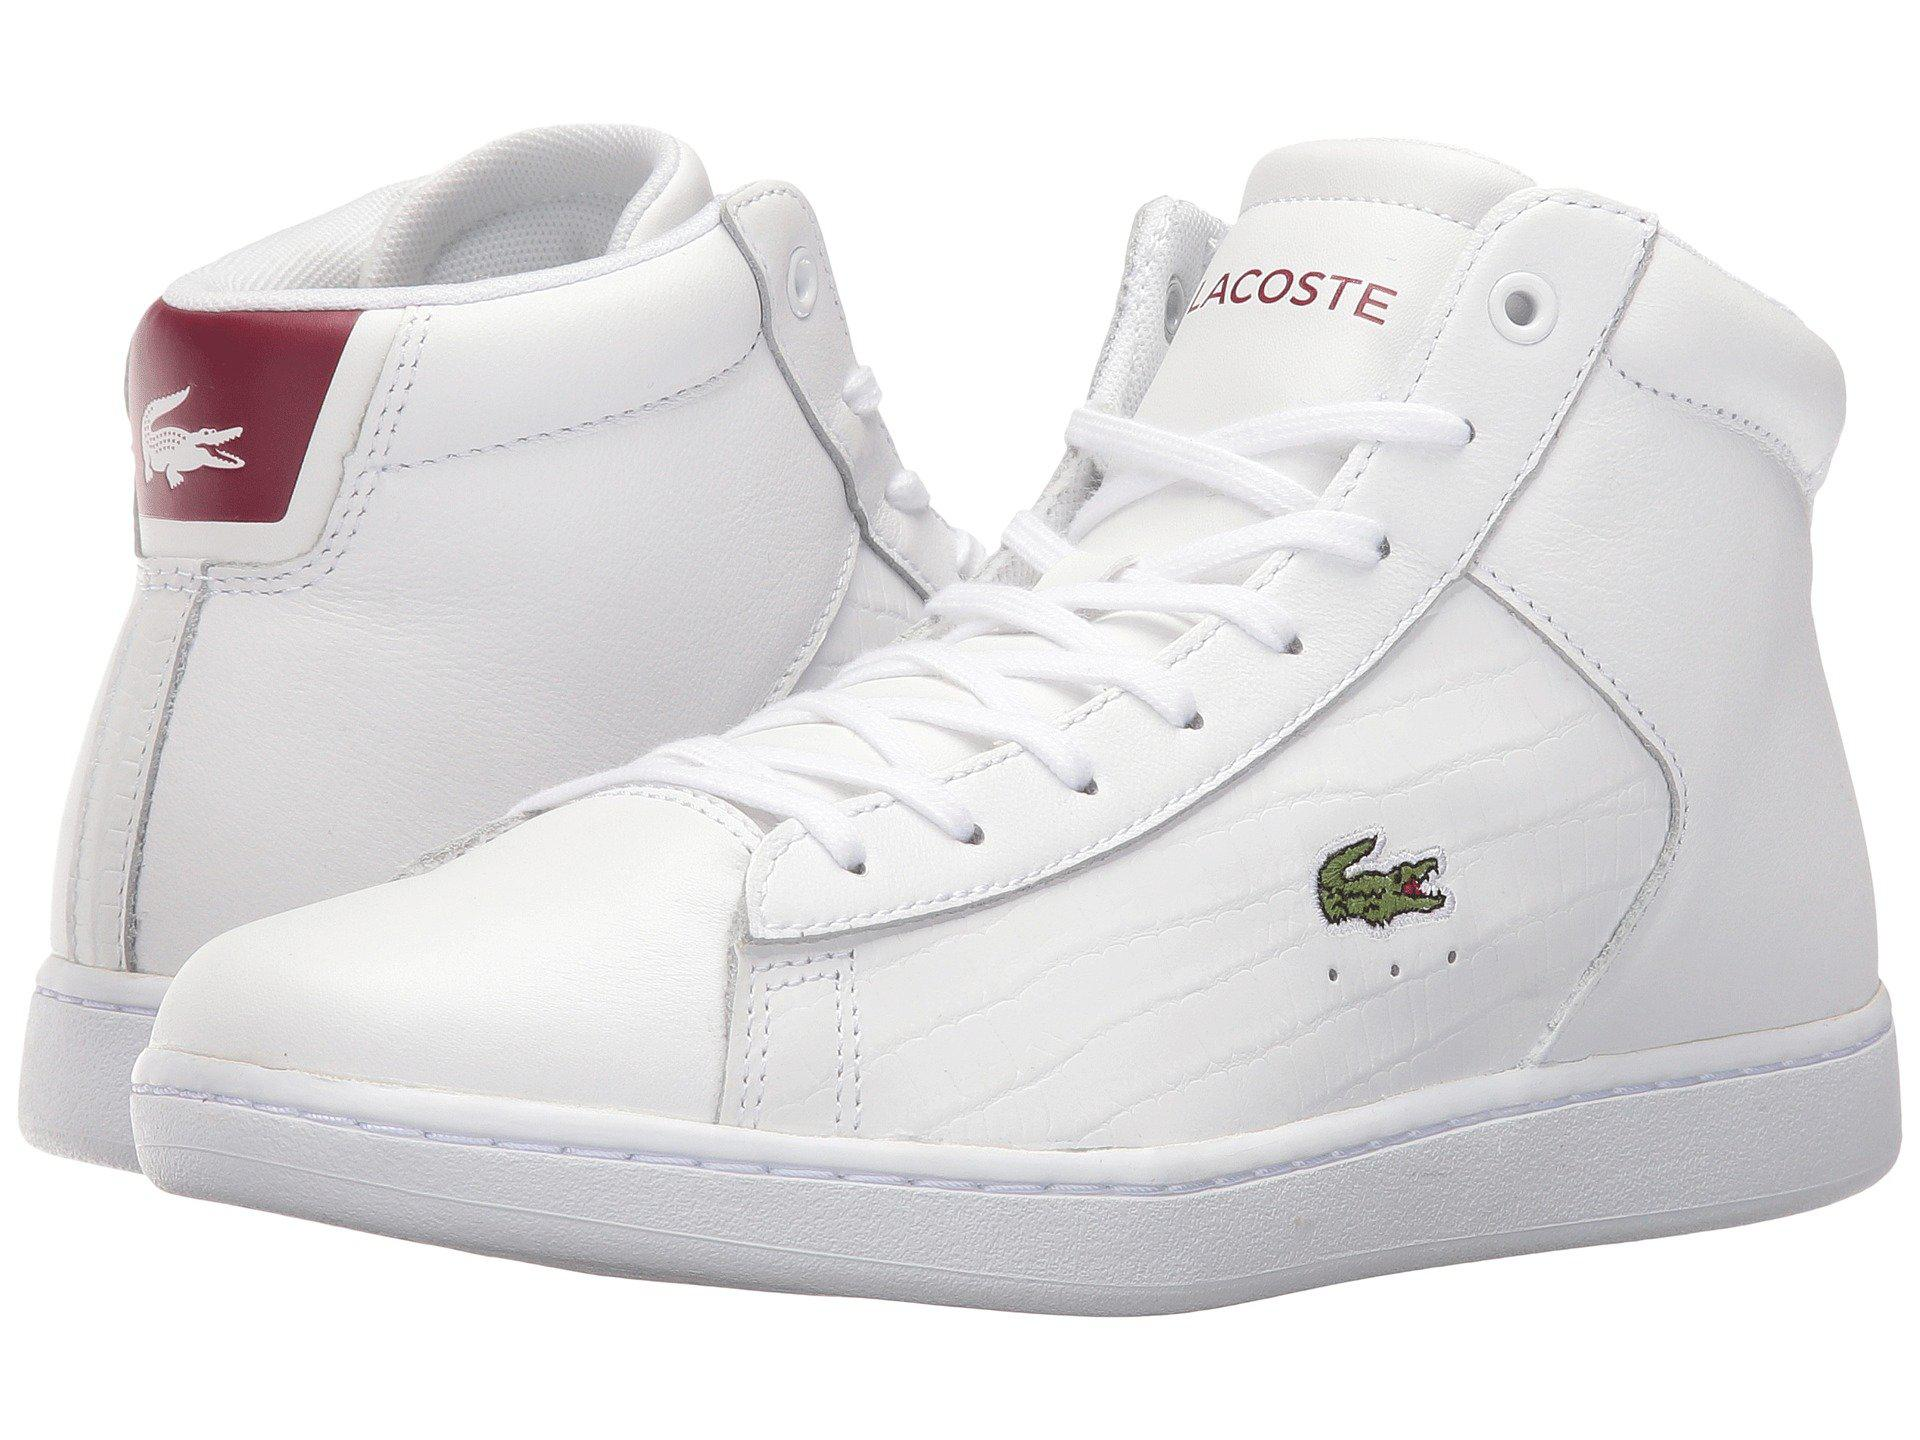 ce24c4d1b9669 Lyst - Lacoste Carnaby Evo Mid G316 2 Spw in White for Men